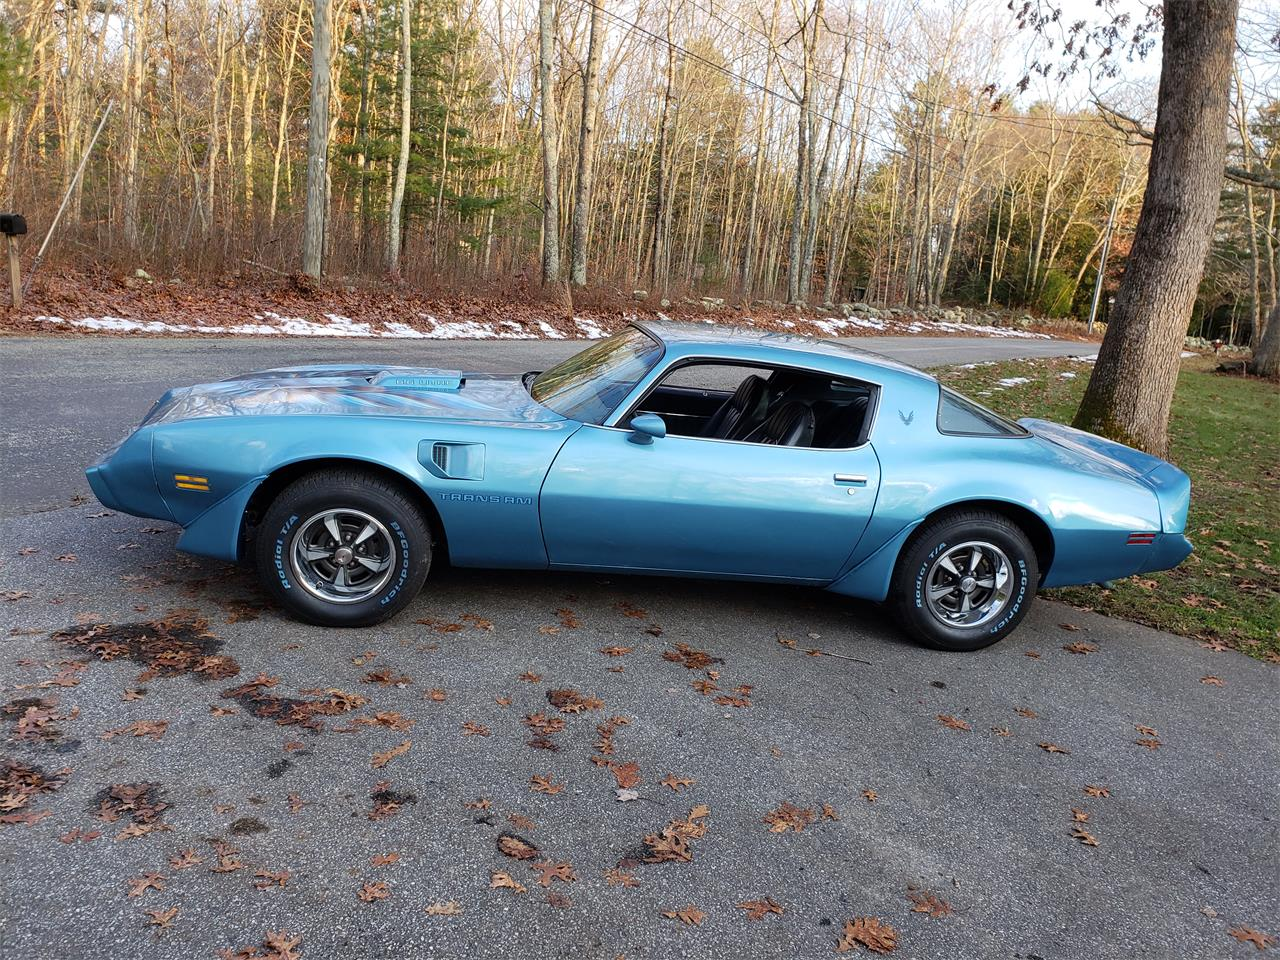 1979 Pontiac Firebird Trans Am for sale in Baltic, CT – photo 3